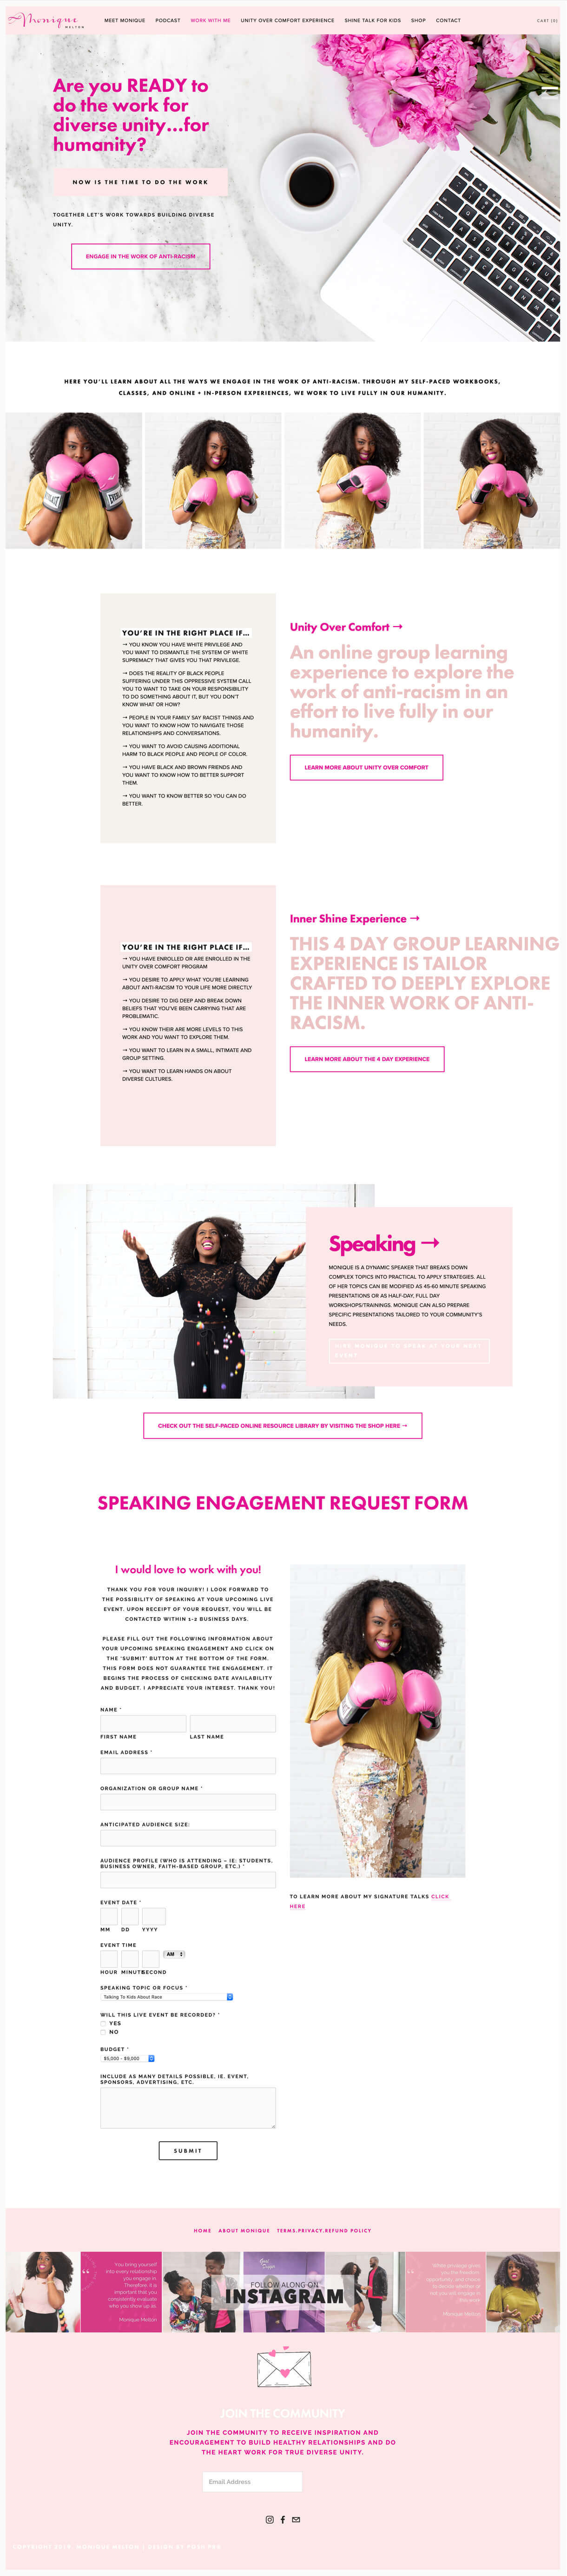 Monique Melton services web page example light pink and white branding colors